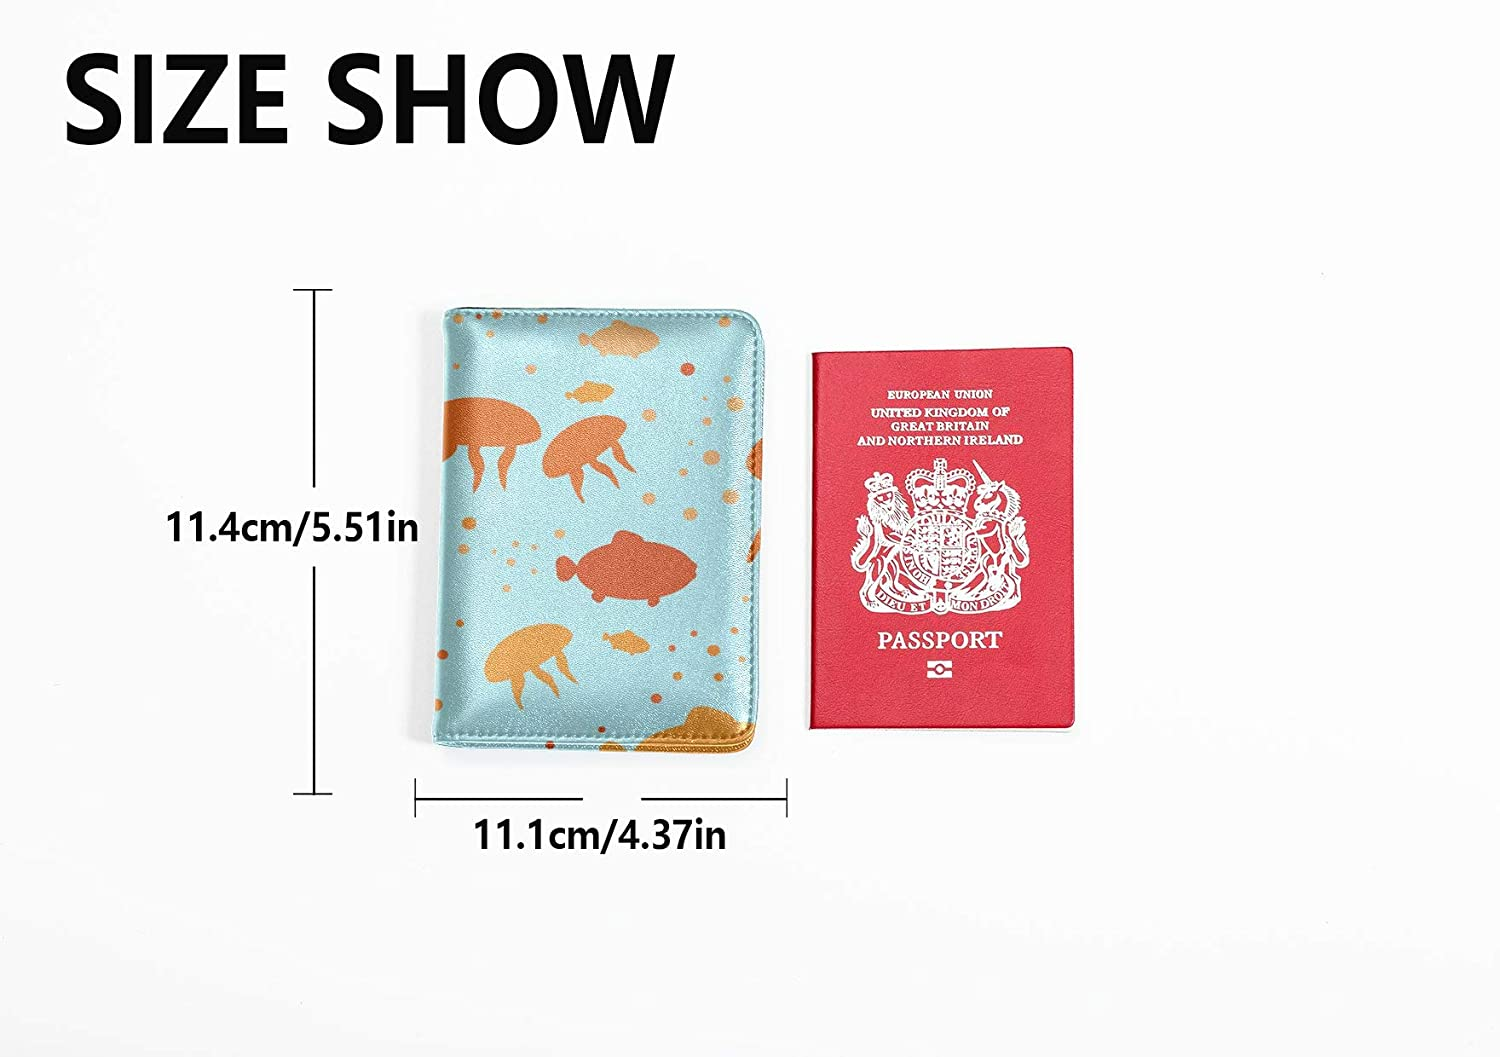 Vintage Passport Cover Cute Underwater Creature Sea Otter Waterproof Passport Cover Multi Purpose Print Passport Cases For Kids Travel Wallets For Unisex 5.51x4.37 Inch